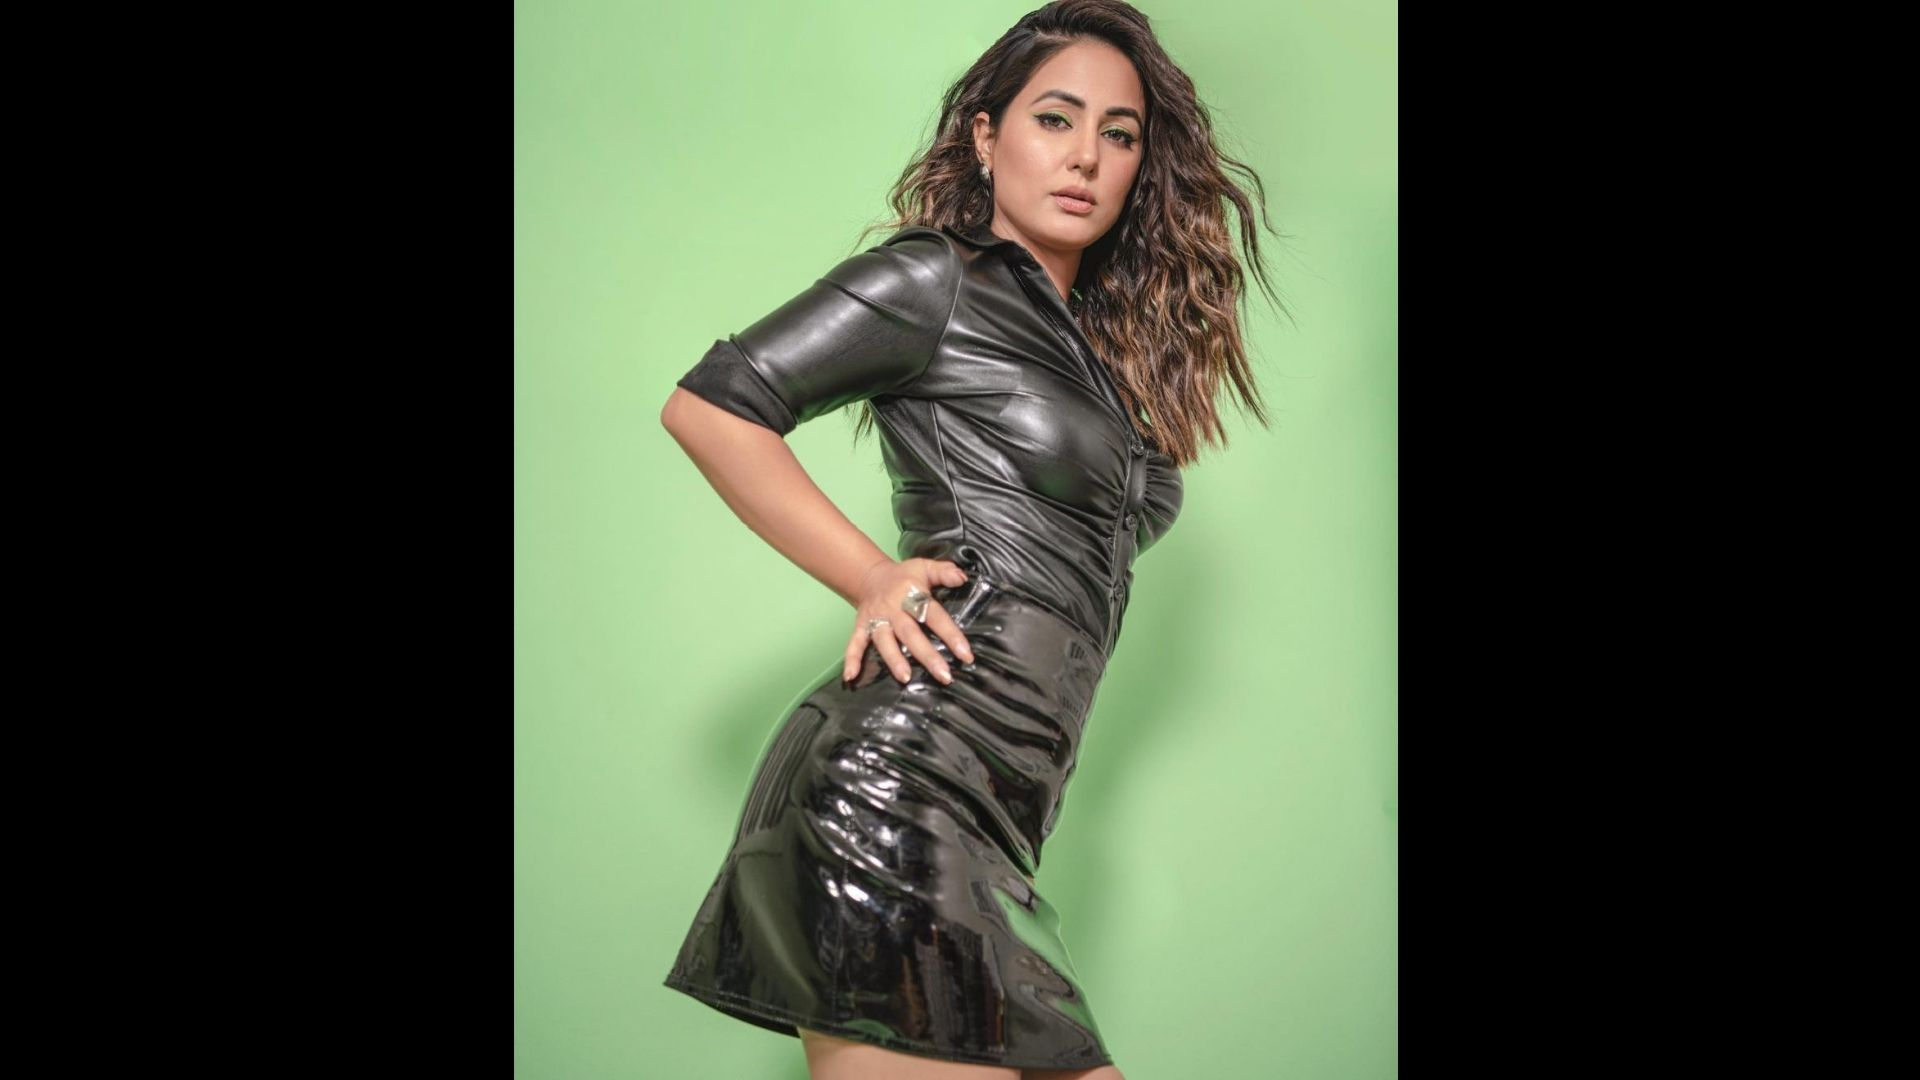 Hina Khan Looks Amazing In Her New Metallic Outfit And Woos Her Fans